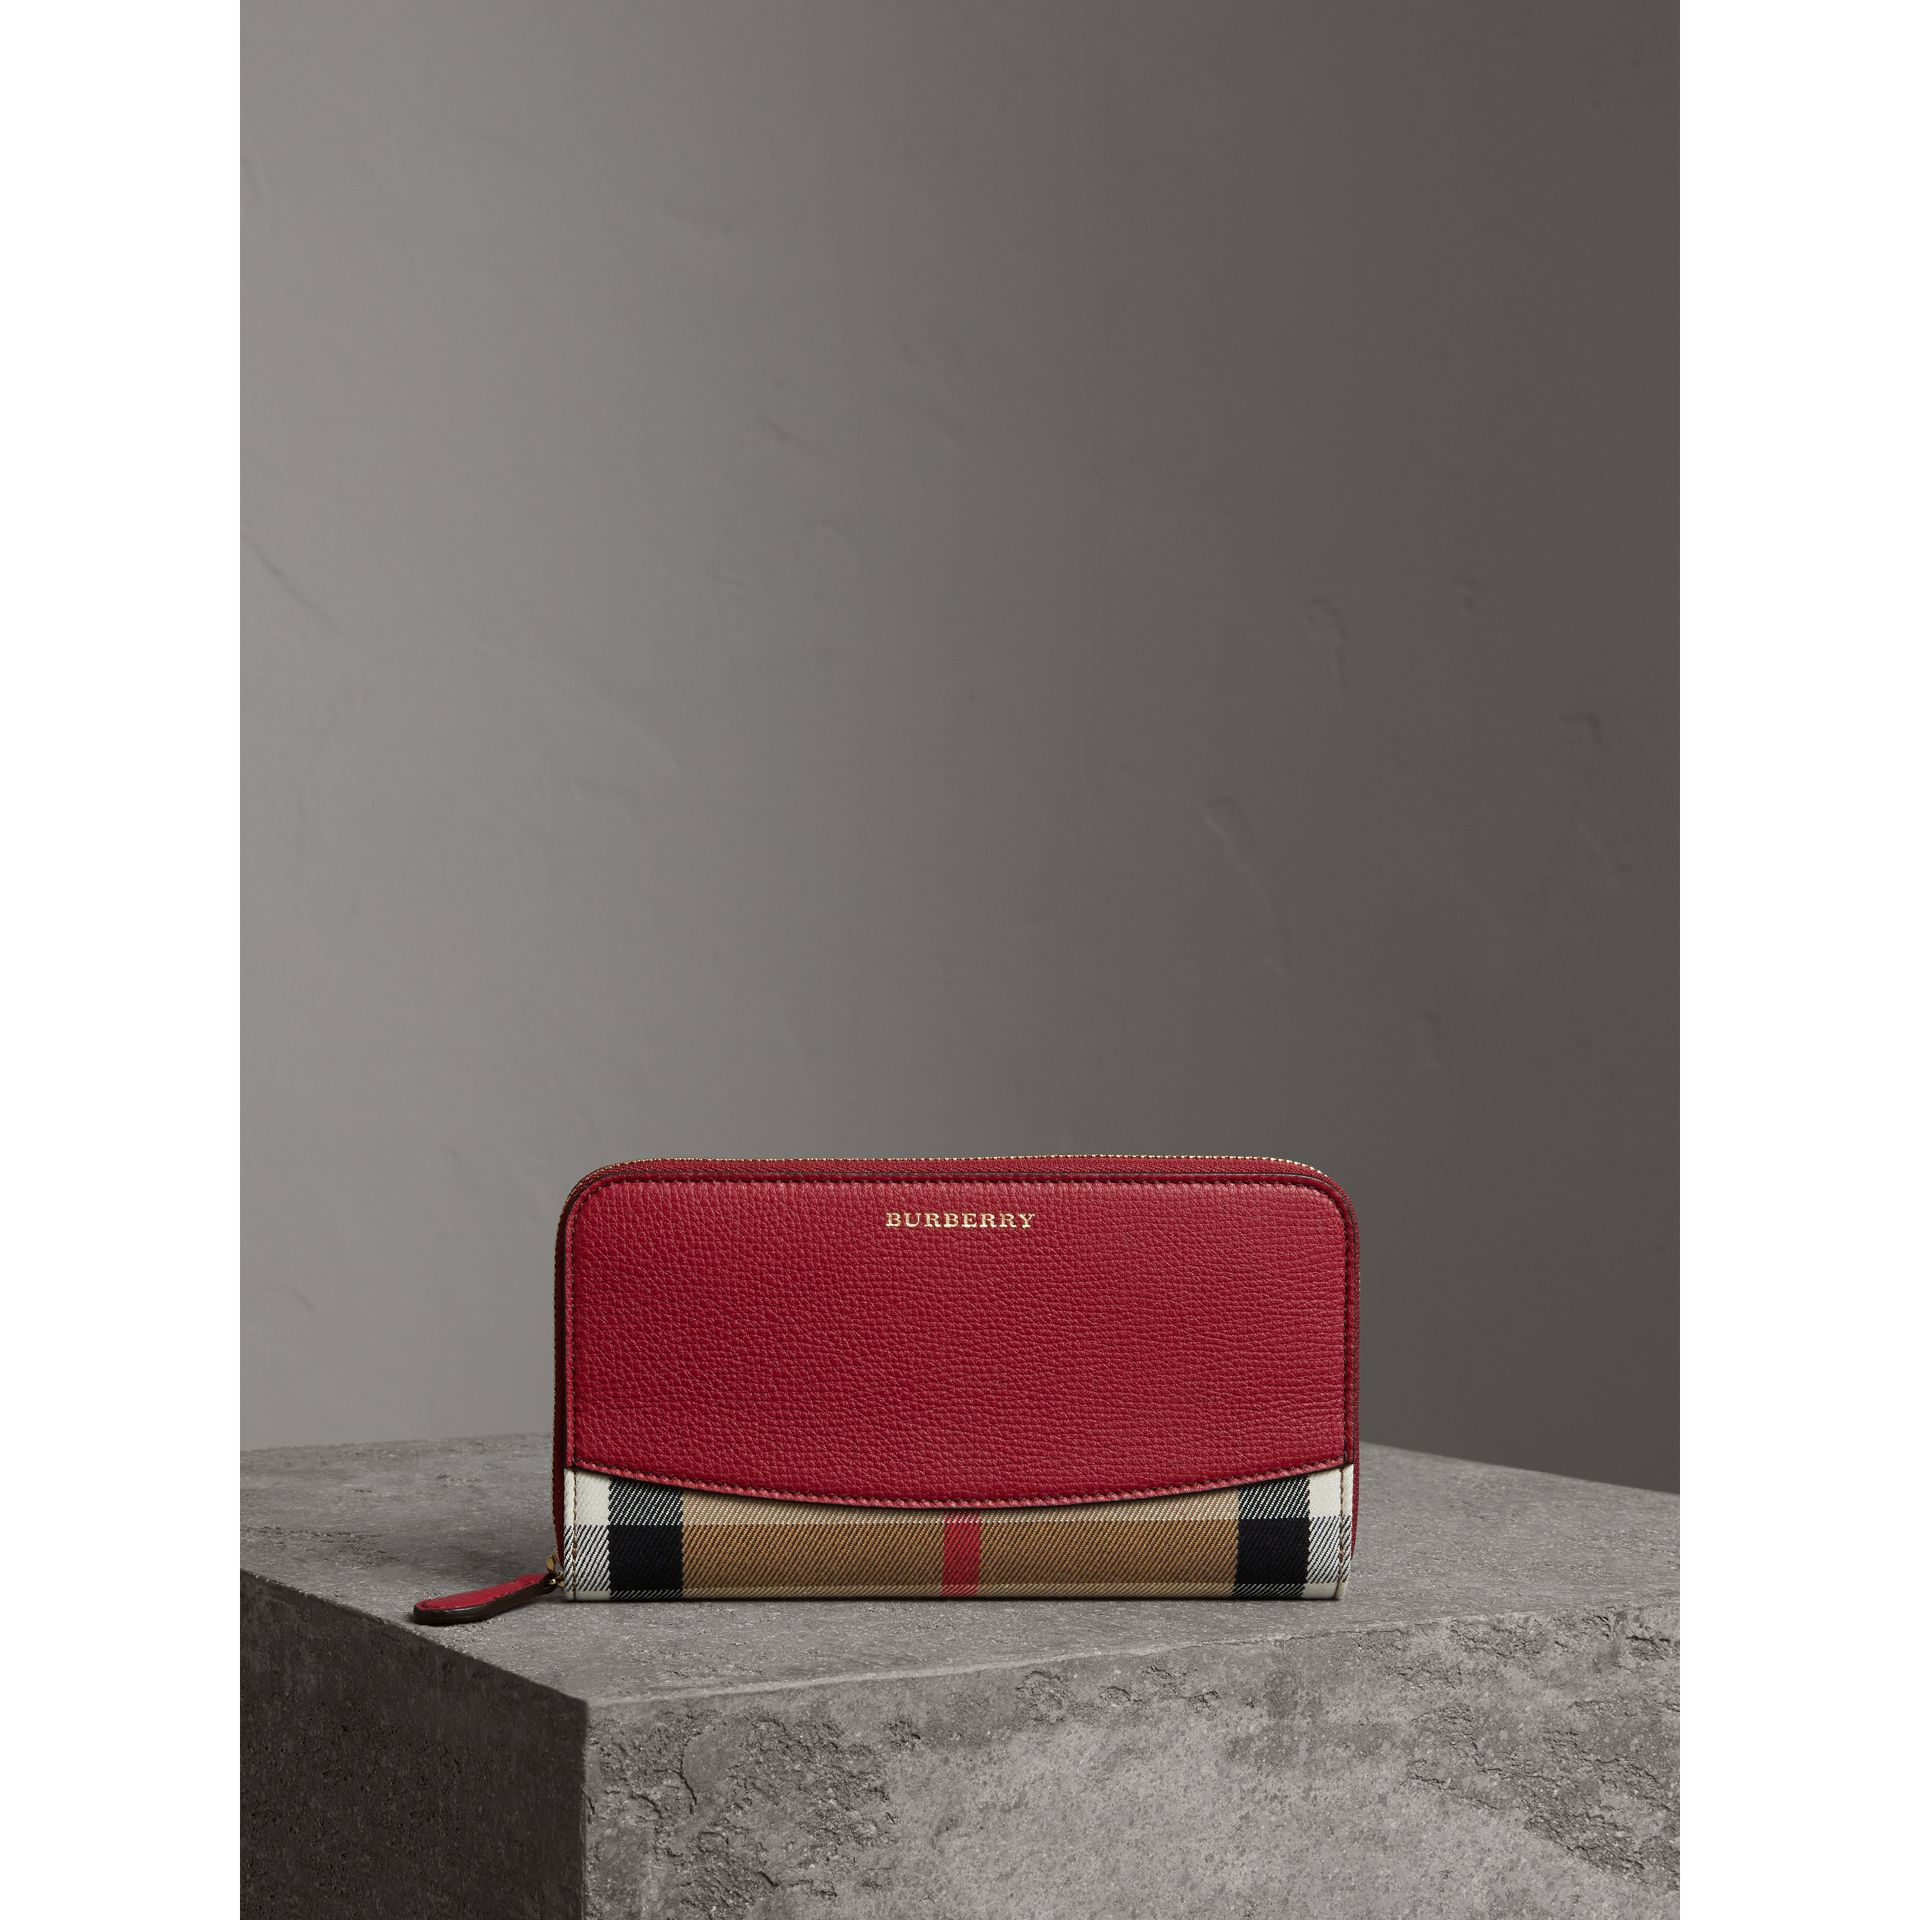 House Check and Leather Ziparound Wallet in Military Red - Women | Burberry - gallery image 5